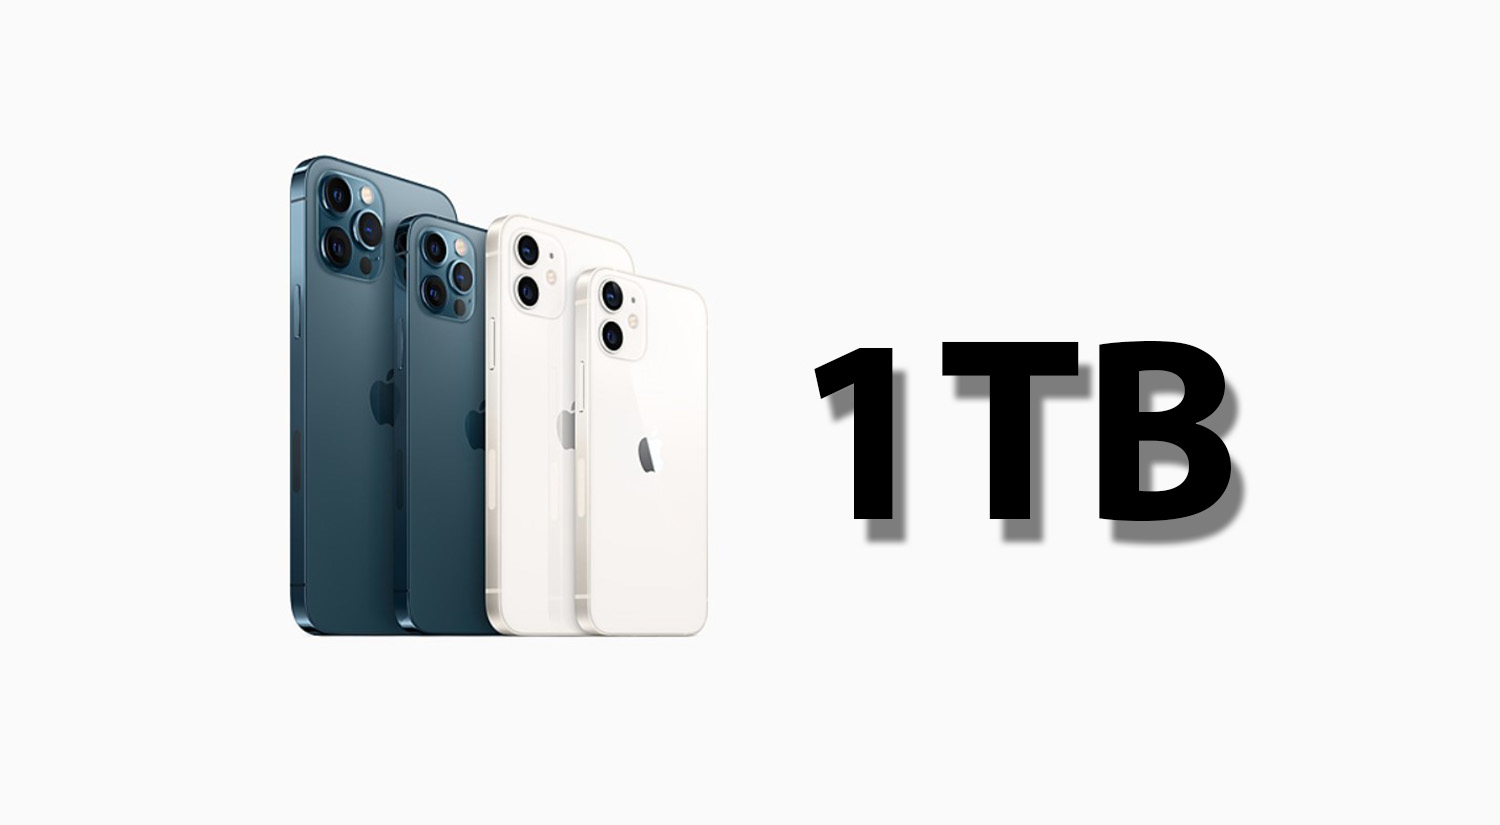 iPhone 13 with 1TB storage models